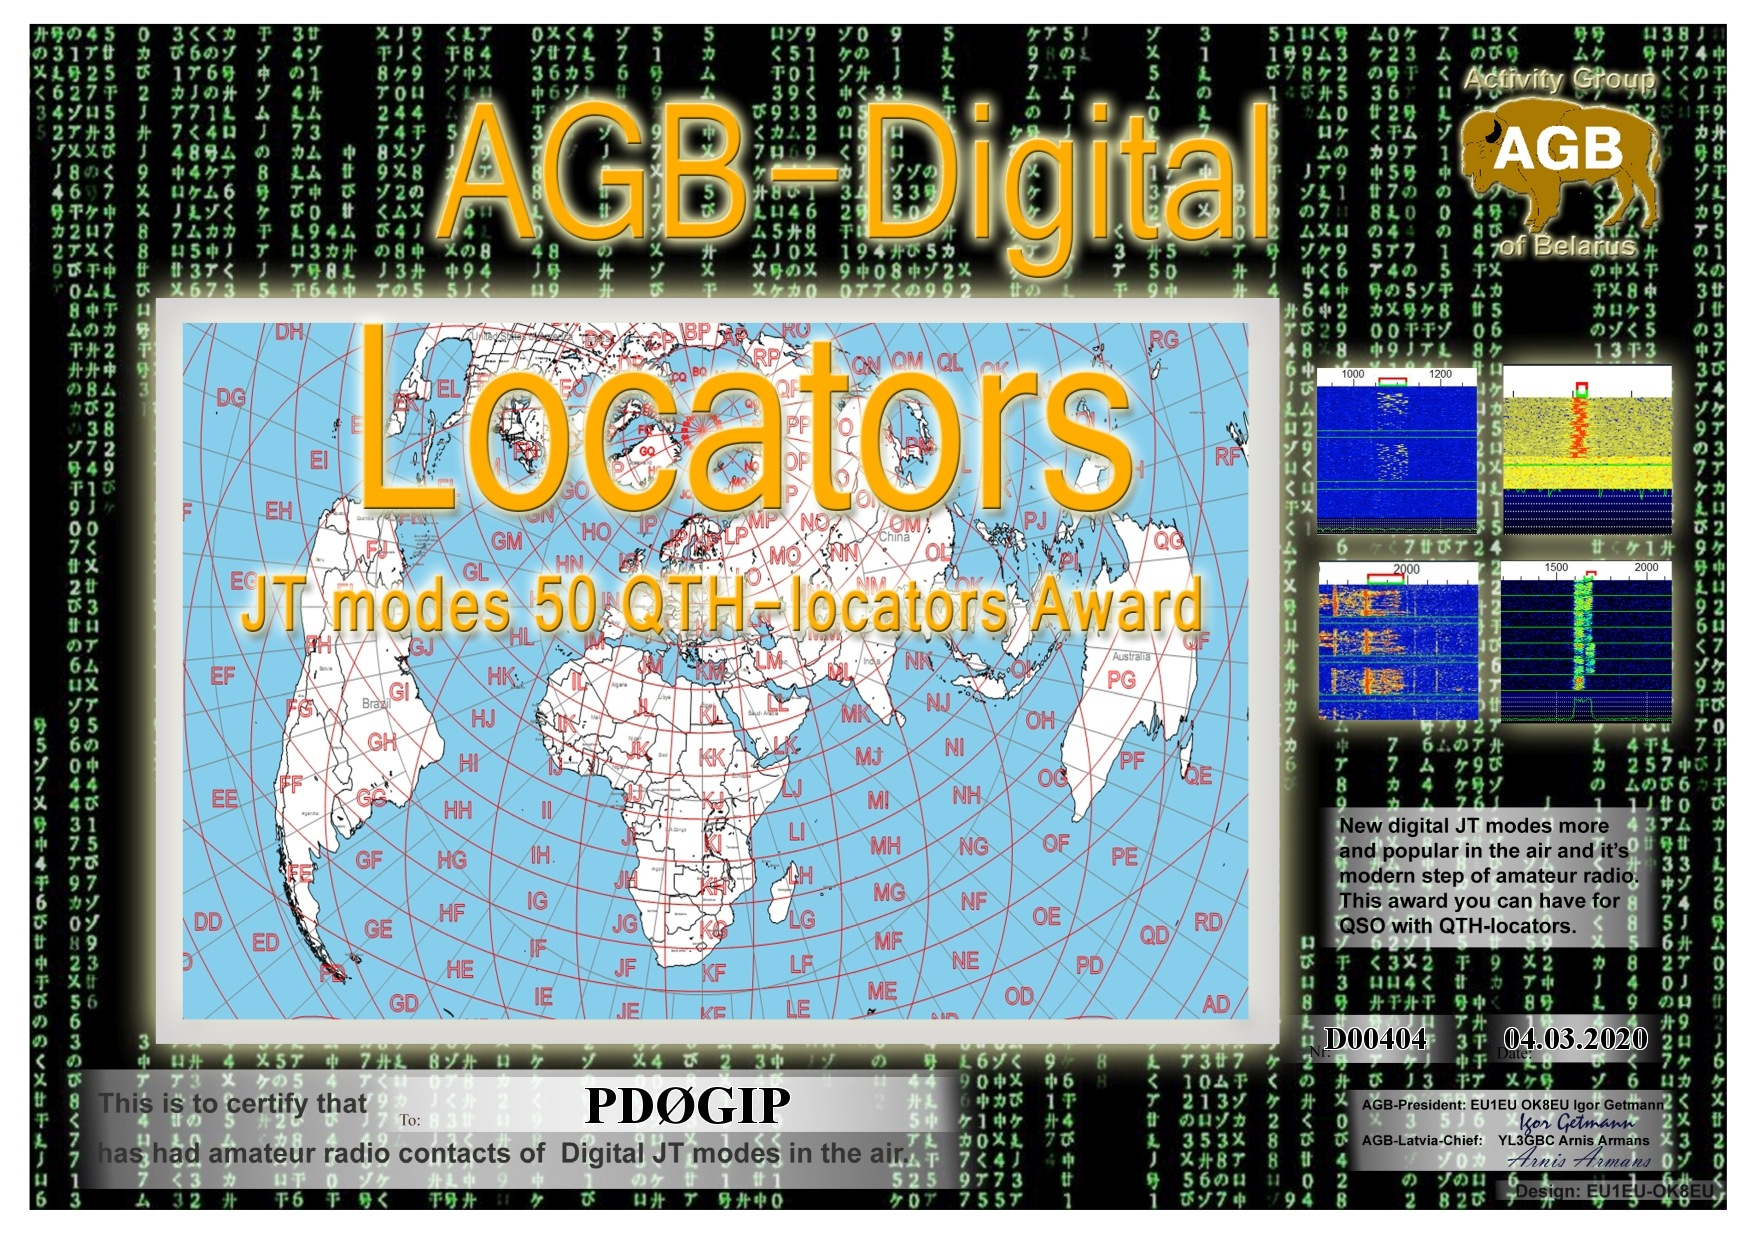 PD0GIP LOCATORS BASIC 50 AGB